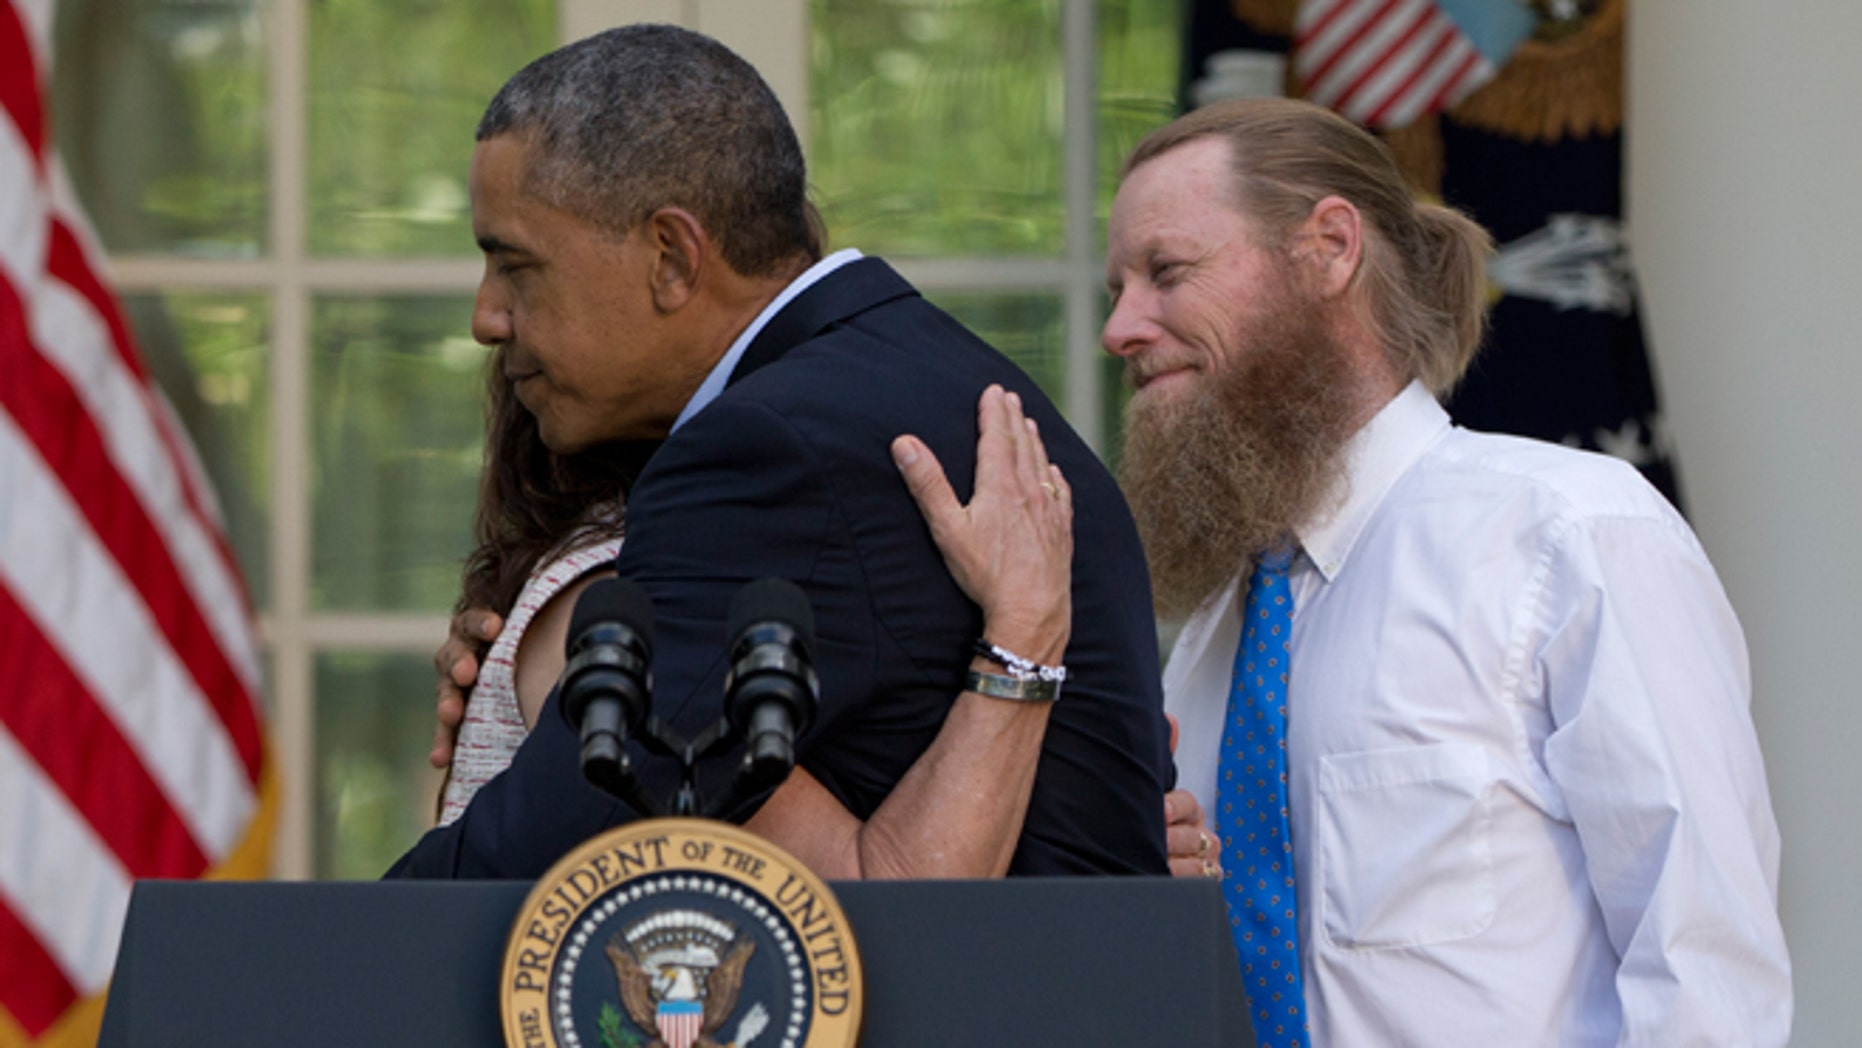 President Obama hugs Jani Bergdahl, as Bob Bergdahl, stands at right, during a news conference in the Rose Garden of the White House in Washington, Saturday, May 31, 2014 about the release of their son, U.S. Army Sgt. Bowe Bergdahl, from captivity. Bergdahl, 28, had been held prisoner by the Taliban since June 30, 2009. He was handed over to U.S. special forces by the Taliban in exchange for the release of five Afghan detainees held by the United States.